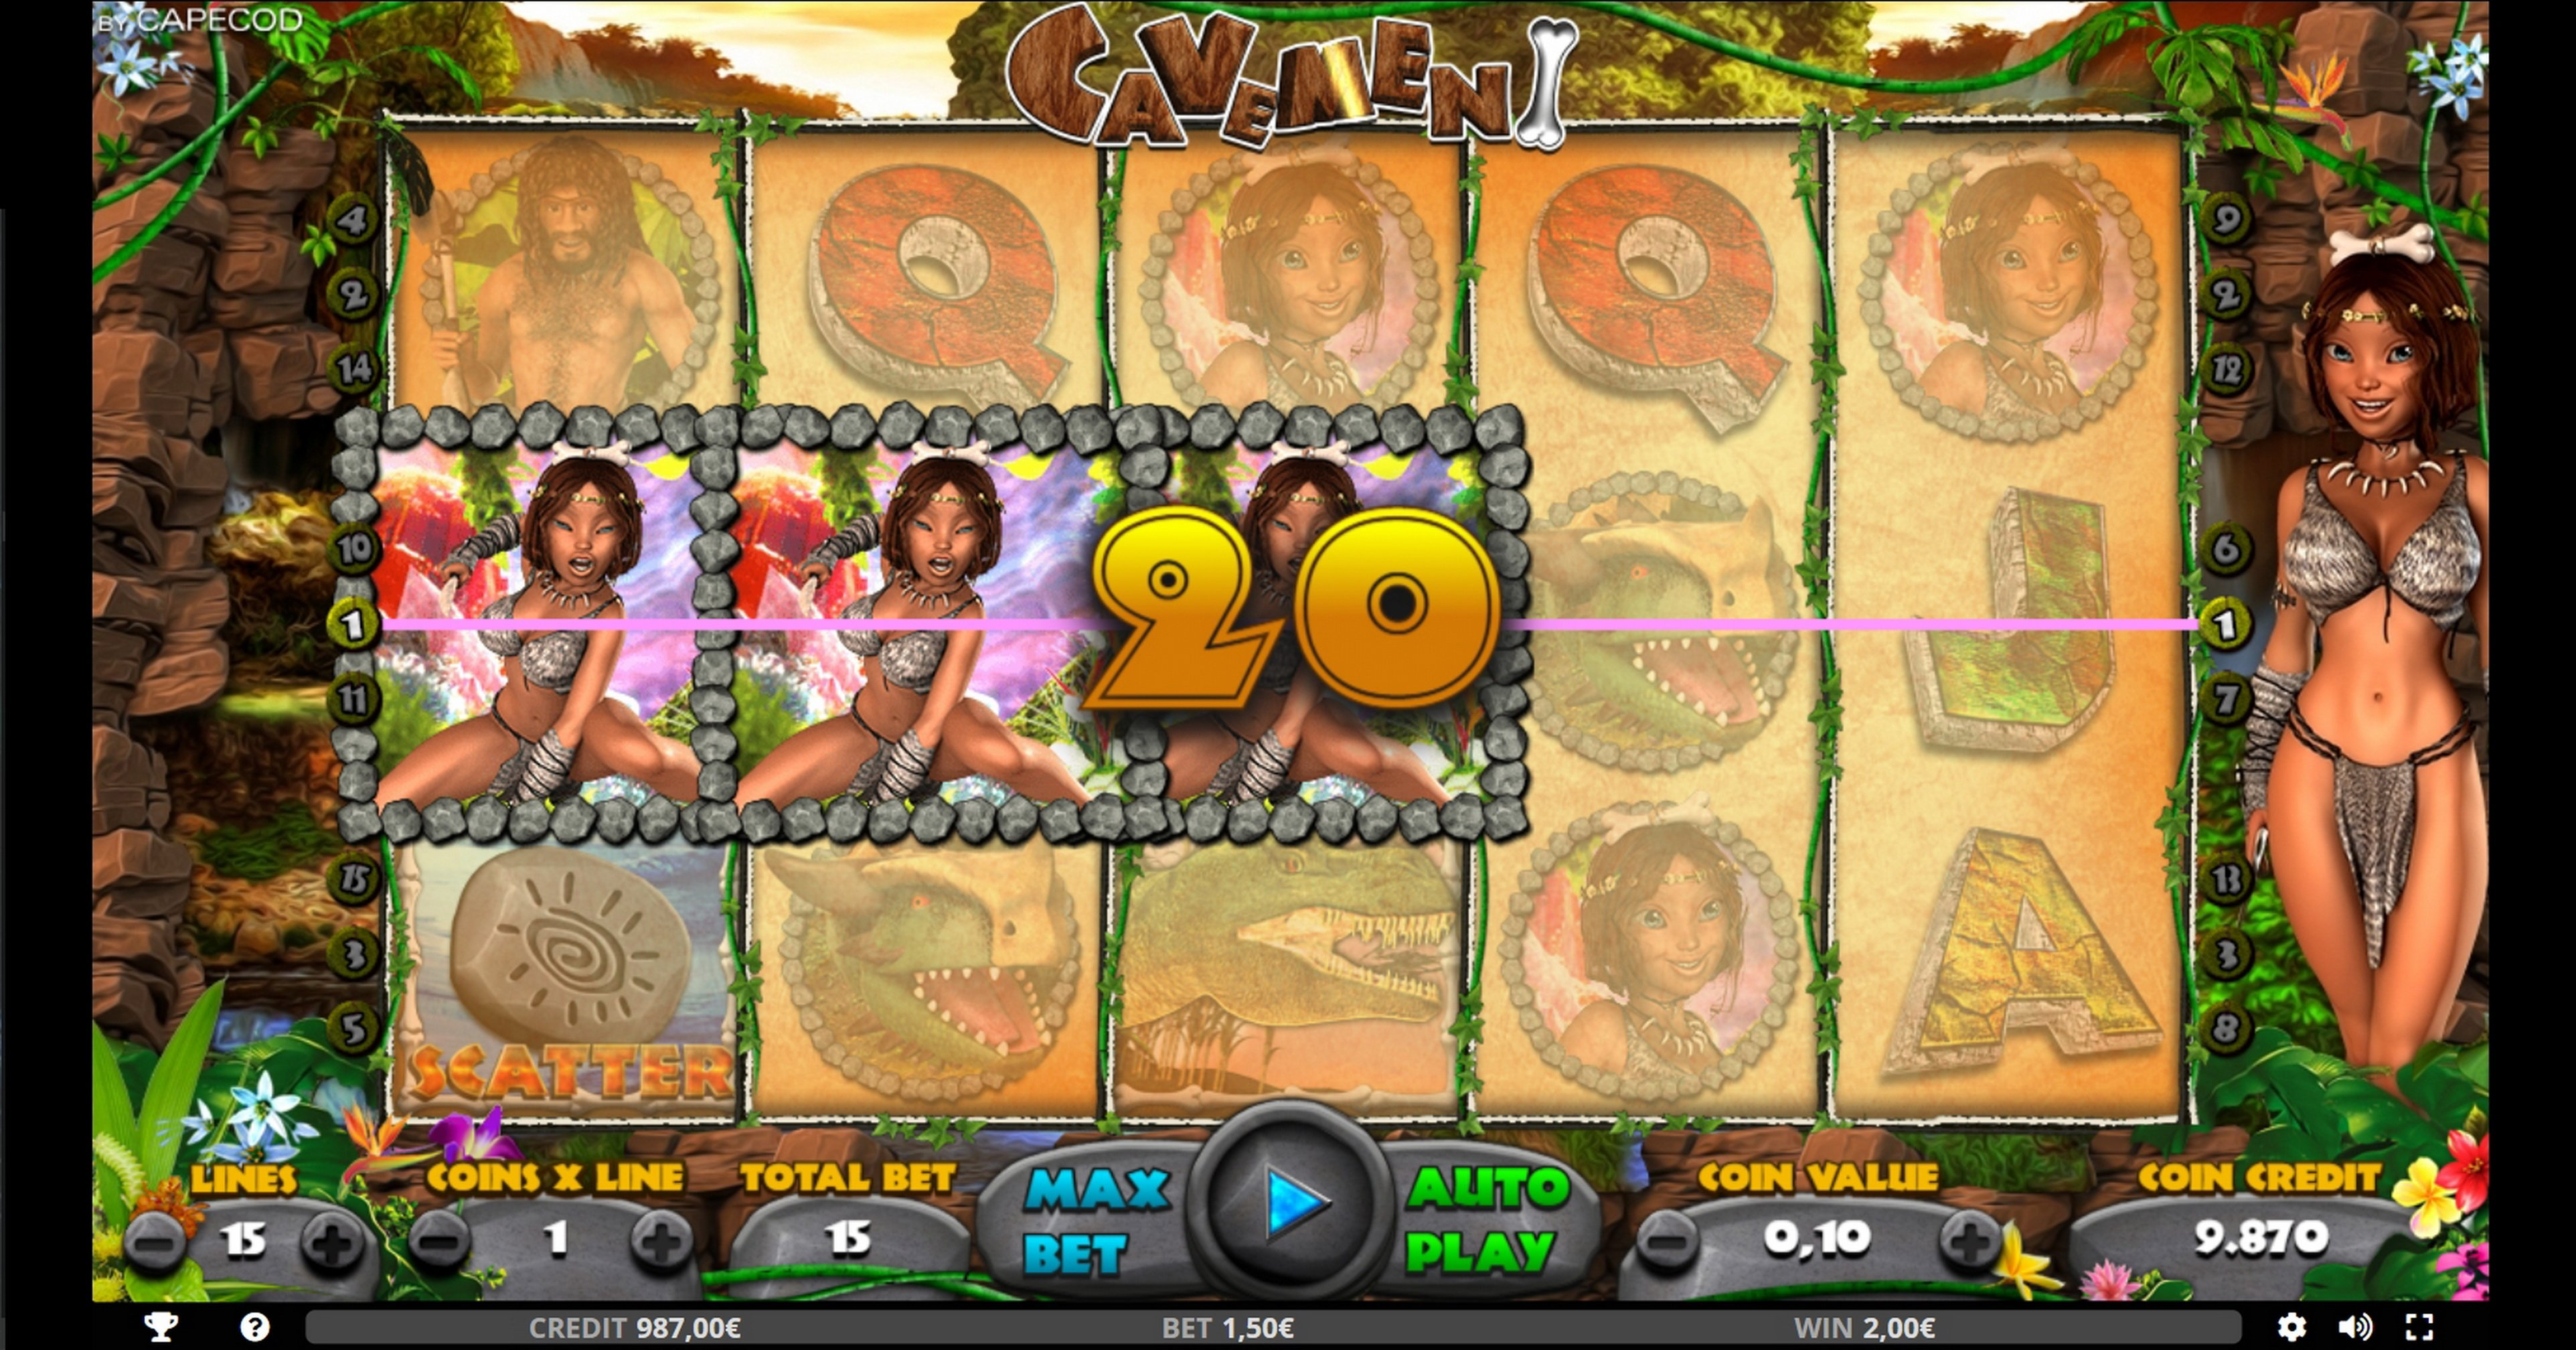 Win Money in Cavemen Free Slot Game by Capecod Gaming